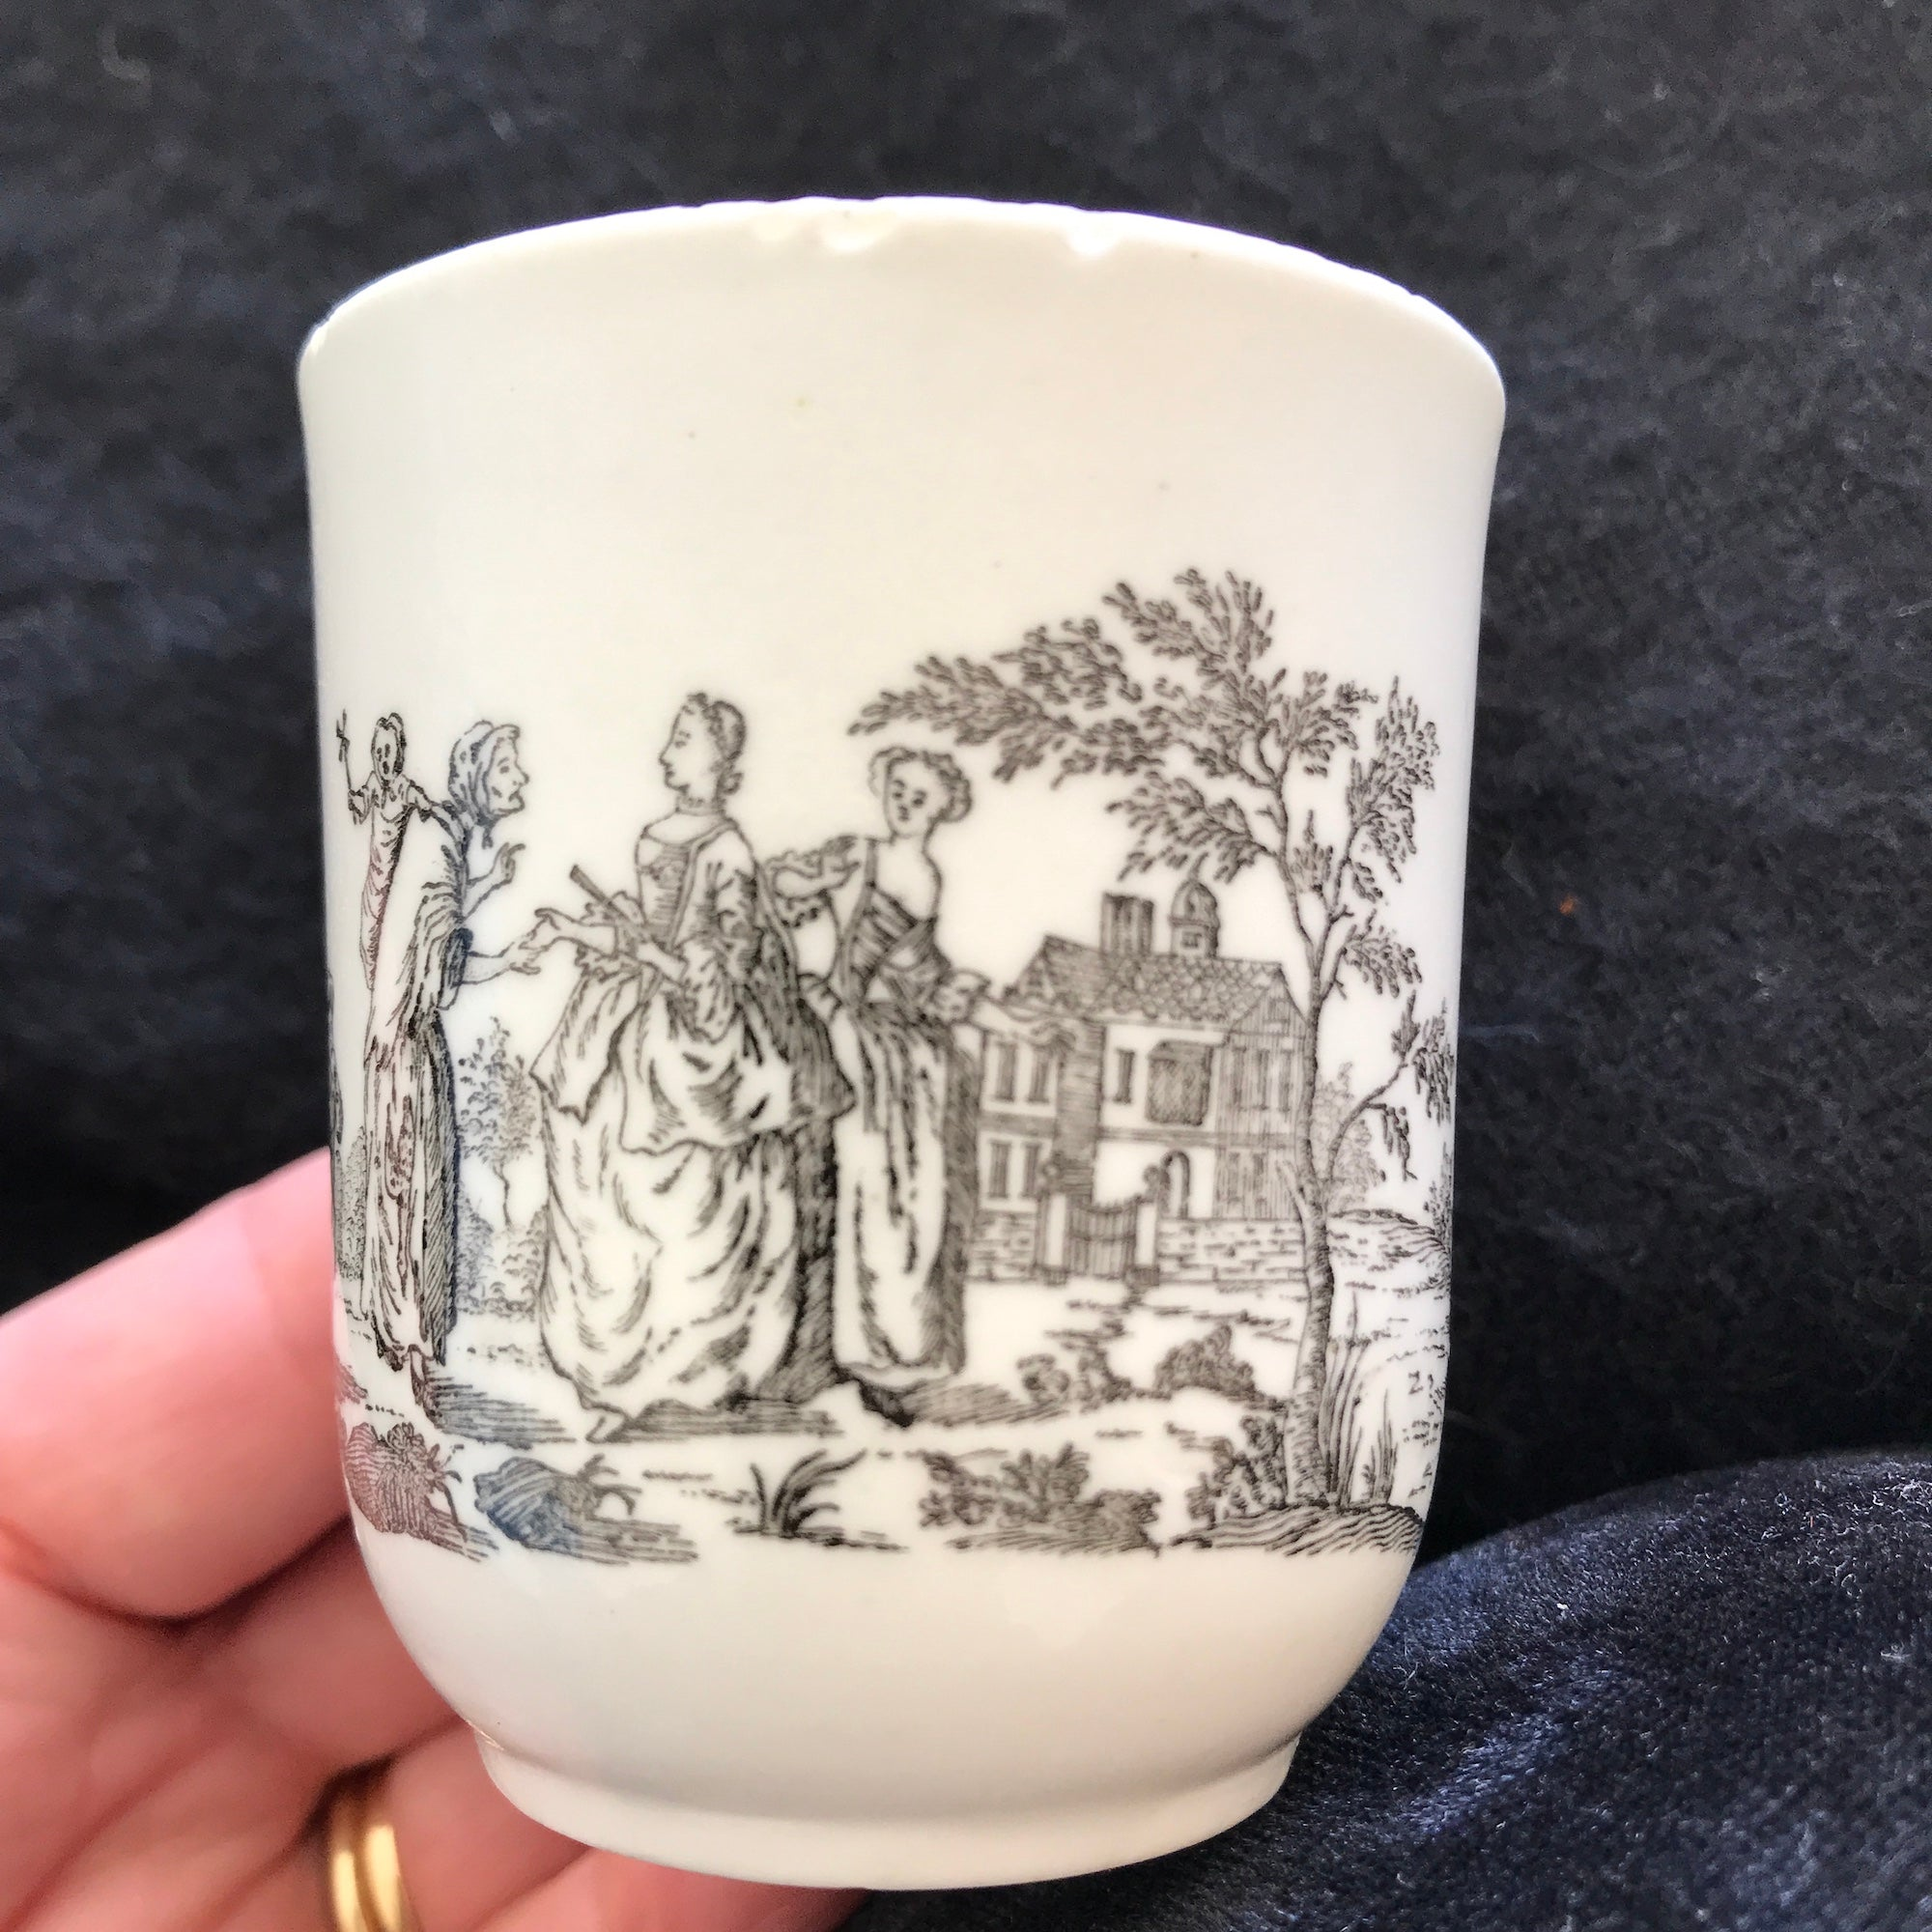 18th Century Worcester Porcelain Coffee Cup with Smokey Primitive Print.